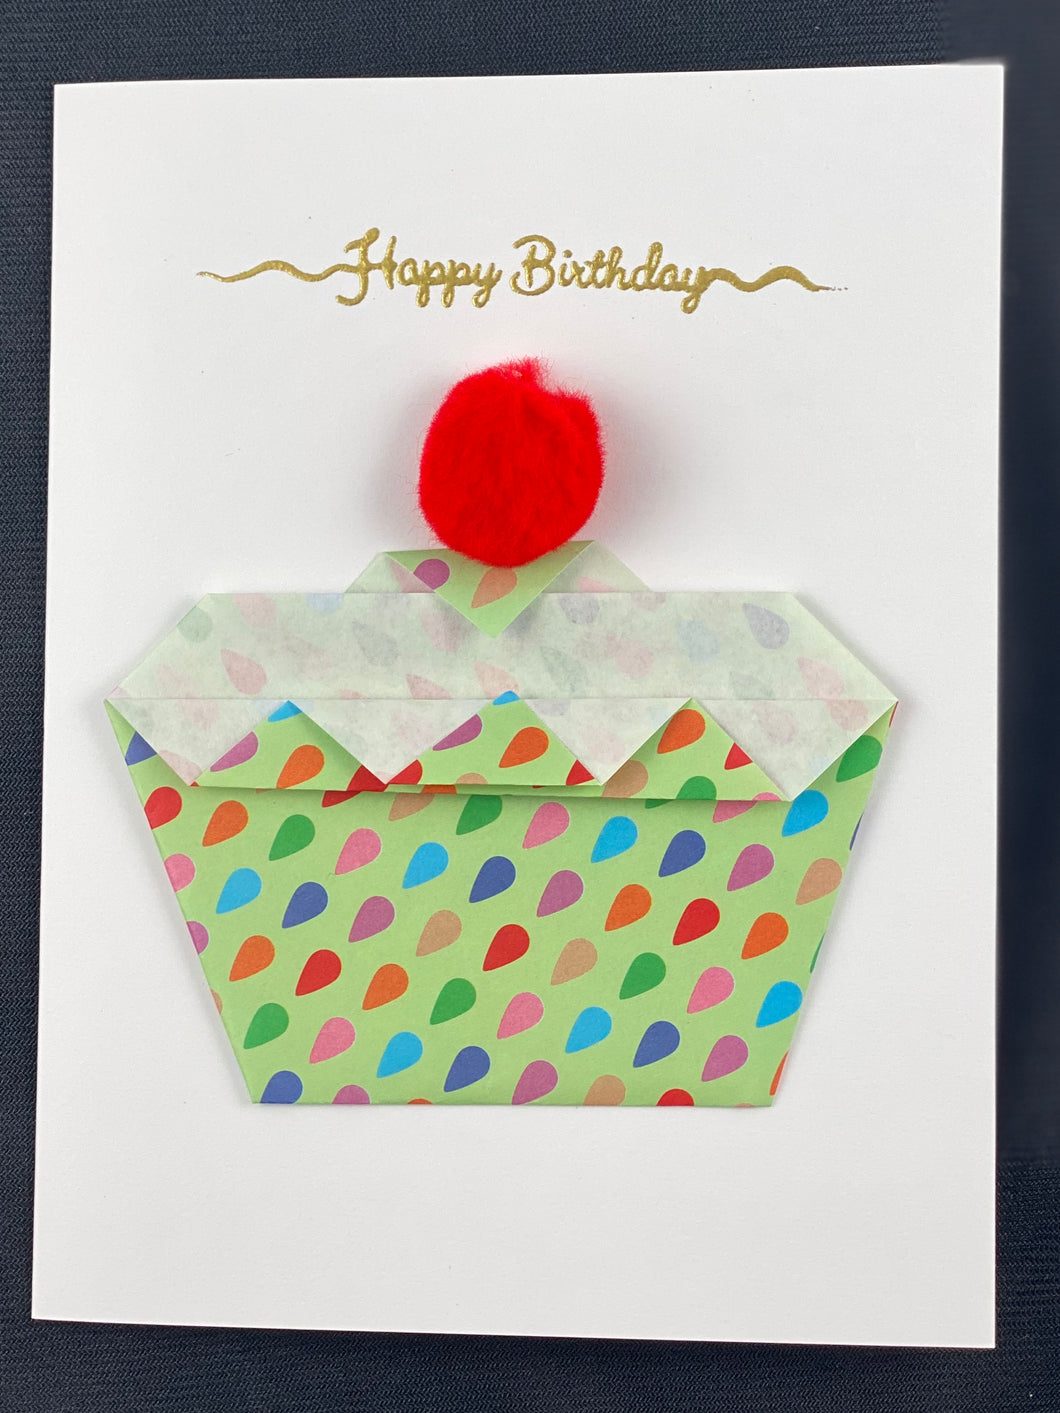 Copy of Origami Cupcake Card with